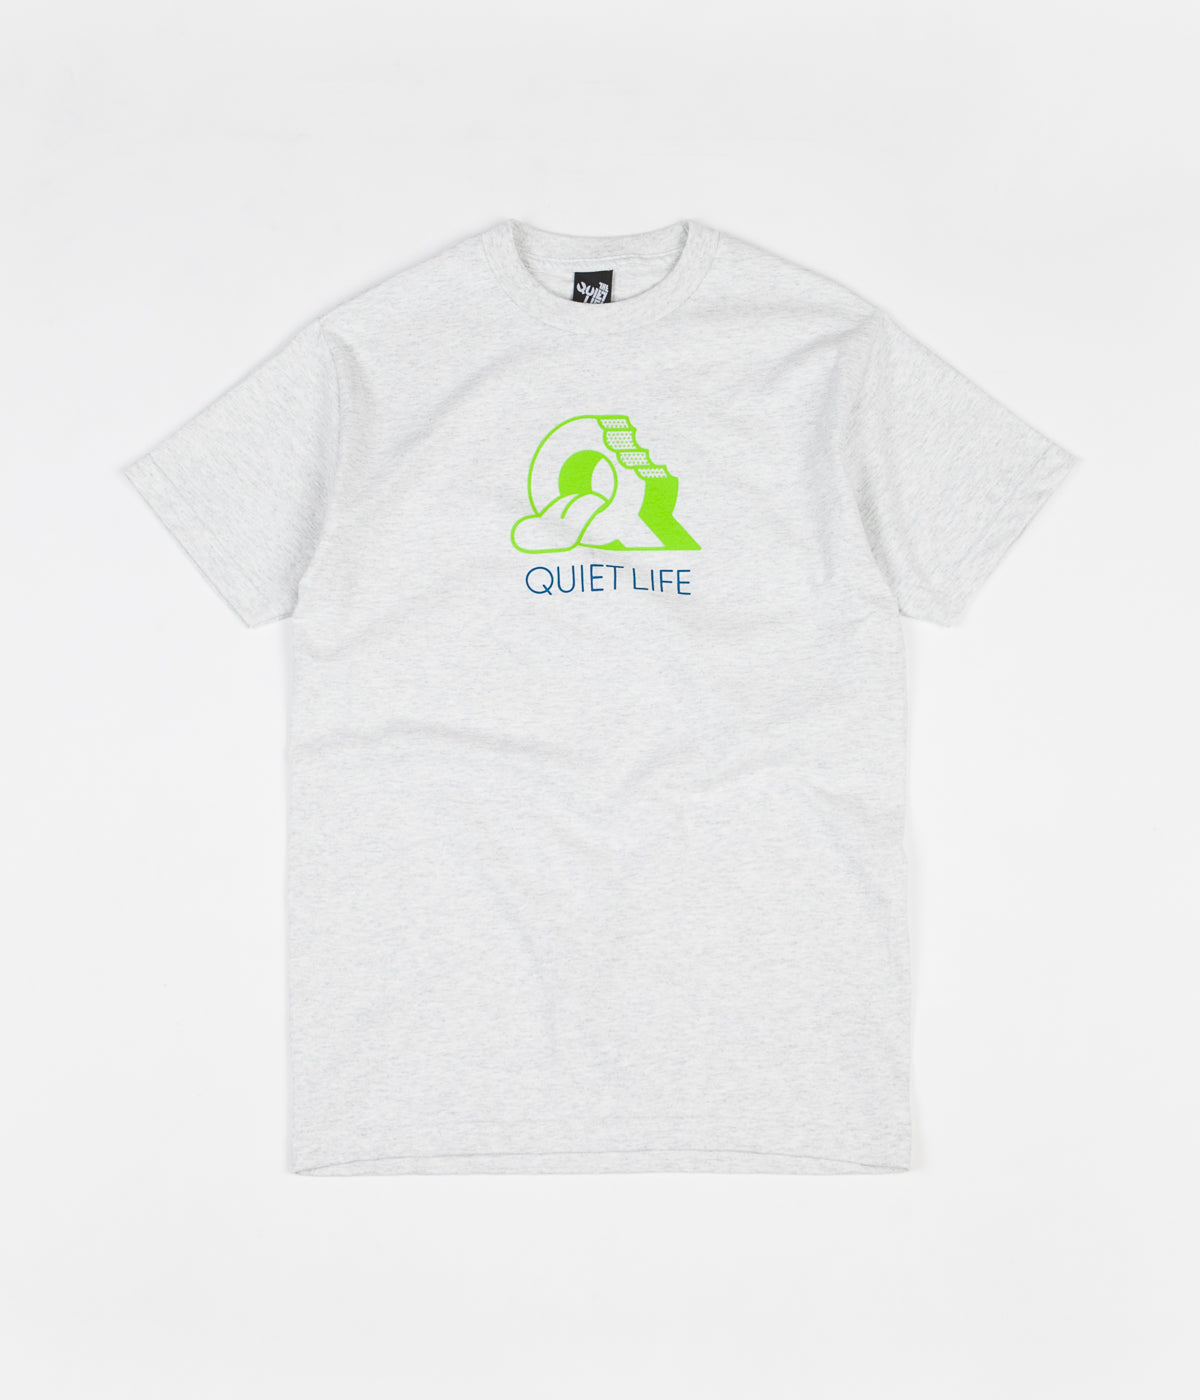 The Quiet Life Demo T-Shirt - Ash Heather